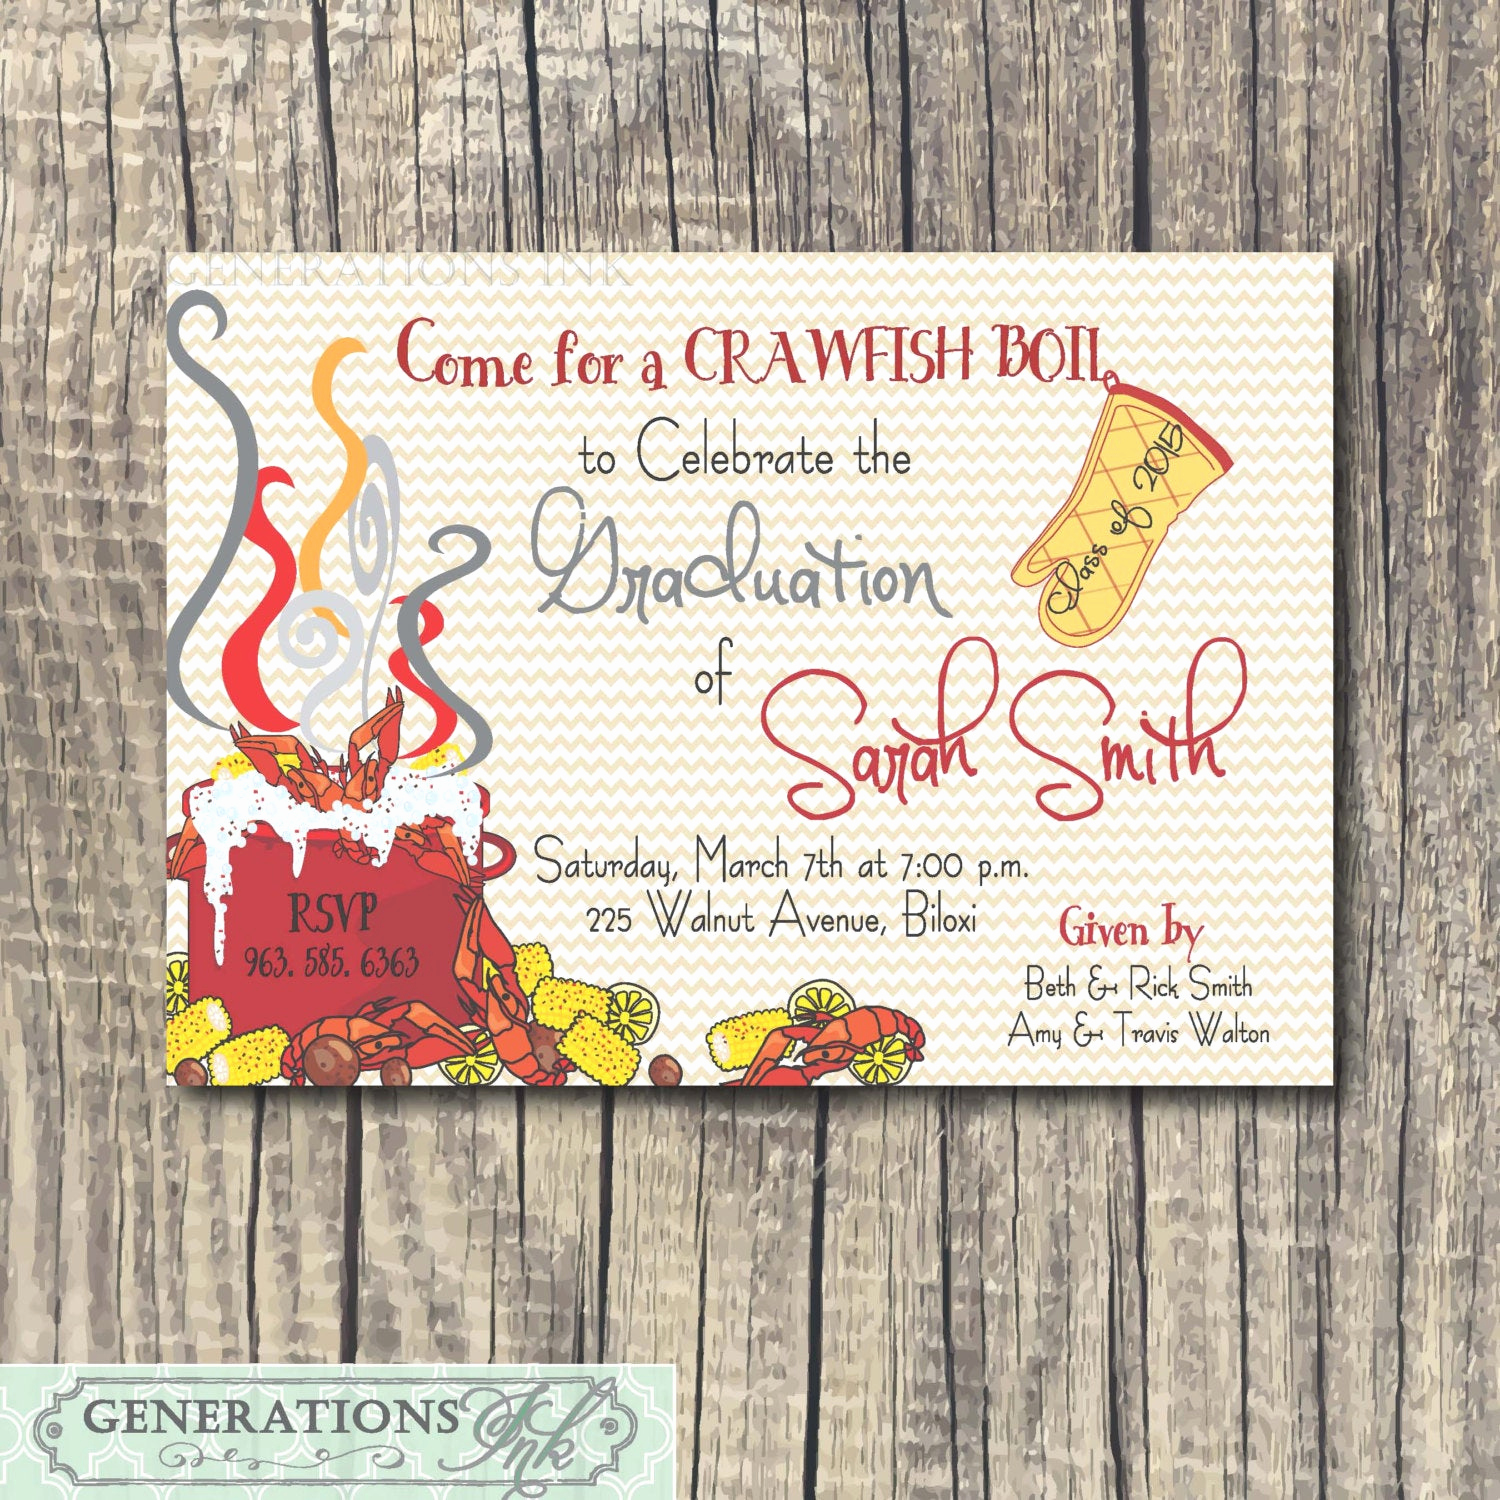 Crawfish Boil Invitation Wording Best Of Item Details